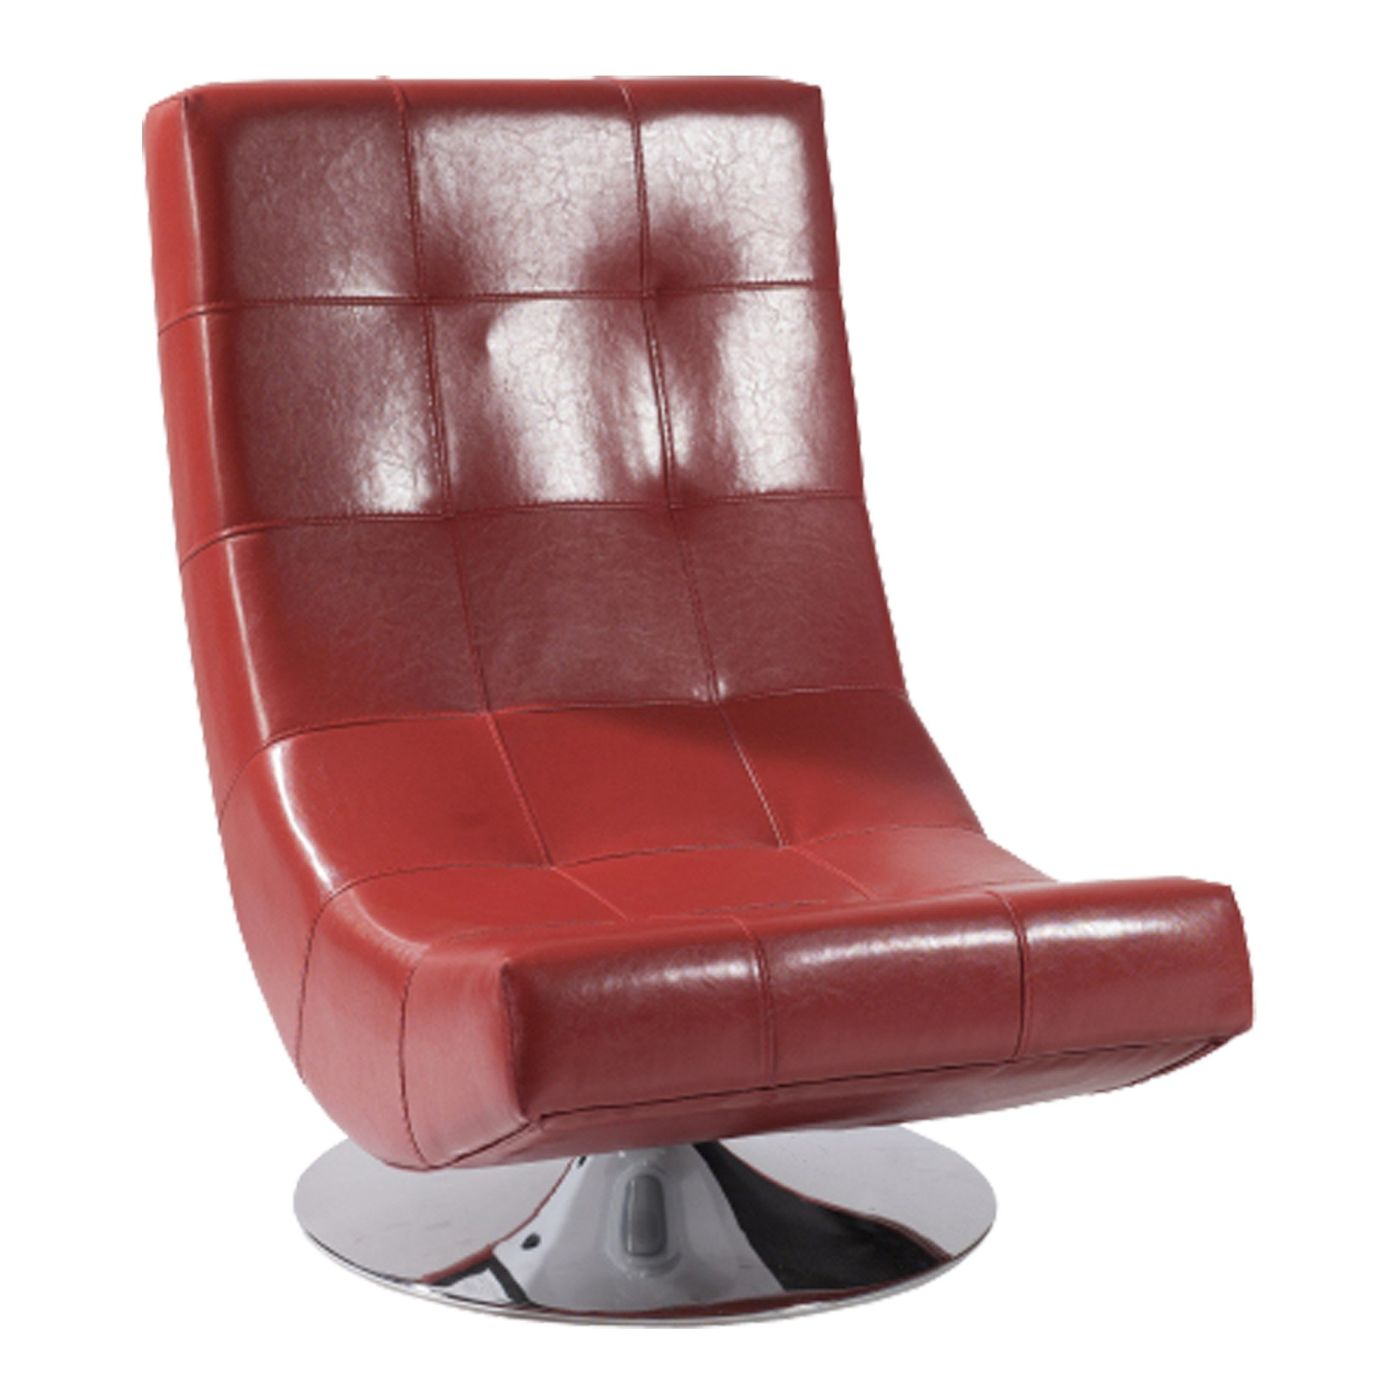 Peachy Buy Armen Living Lc3634Clre Mario Swivel Chair Red Bonded Leather At Contemporary Furniture Warehouse Evergreenethics Interior Chair Design Evergreenethicsorg